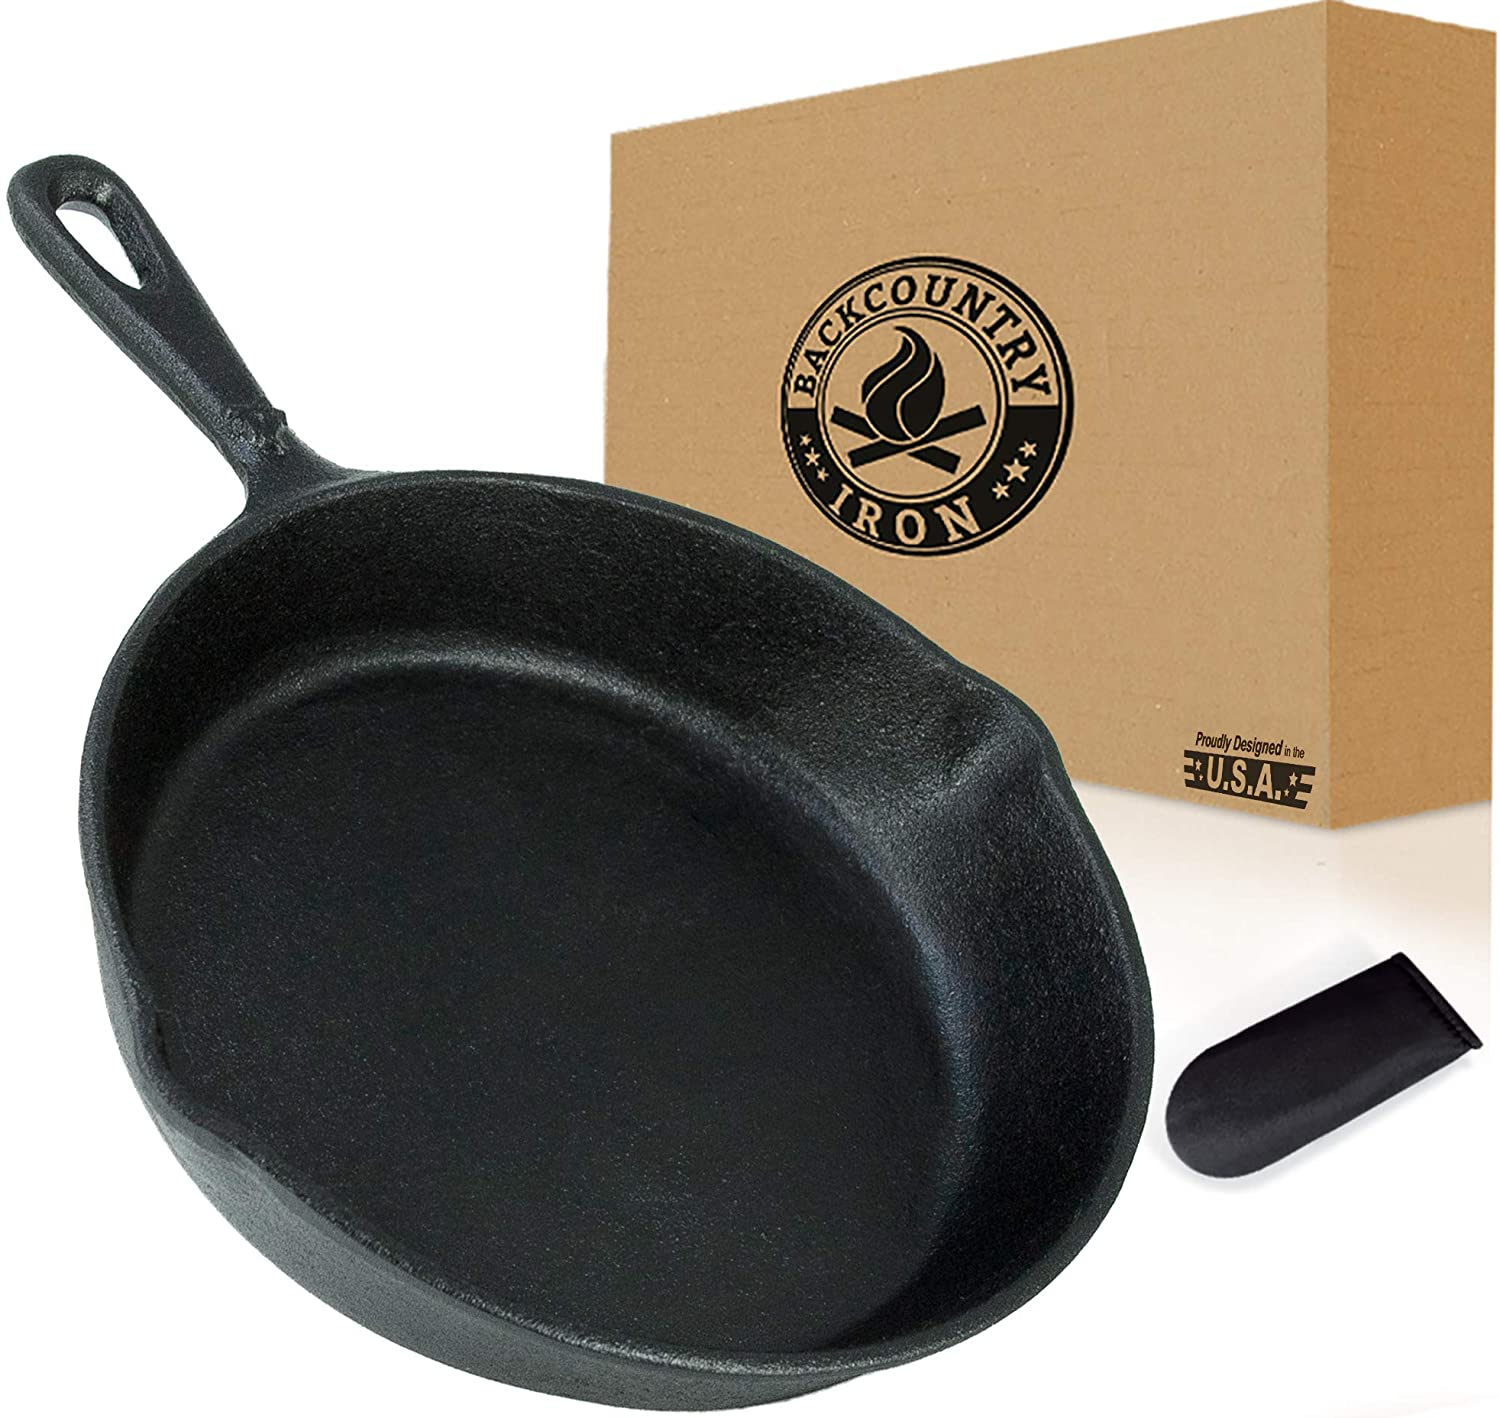 Backcountry Cast Iron Skillet(6 Inch Small Frying Pan + Cloth Handle Mitt, Pre-Seasoned for Non-Stick Like Surface, Cookware Oven / Broiler / Grill Safe, Kitchen Deep Fryer, Restaurant Chef Quality)